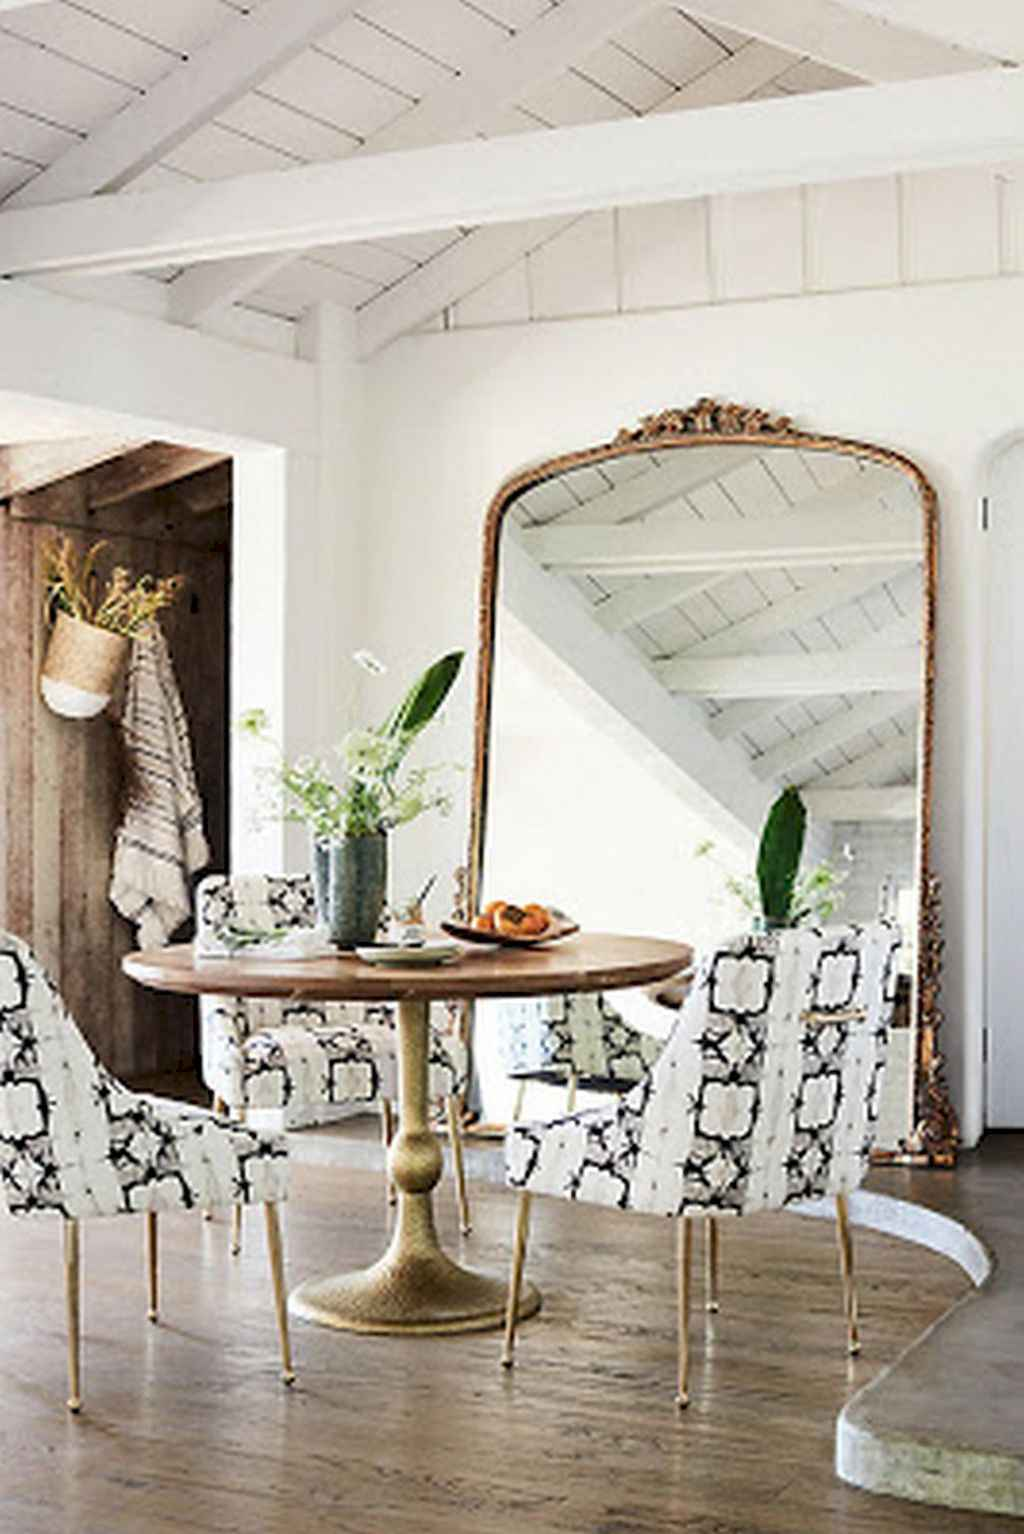 Clever small dining room ideas (43)